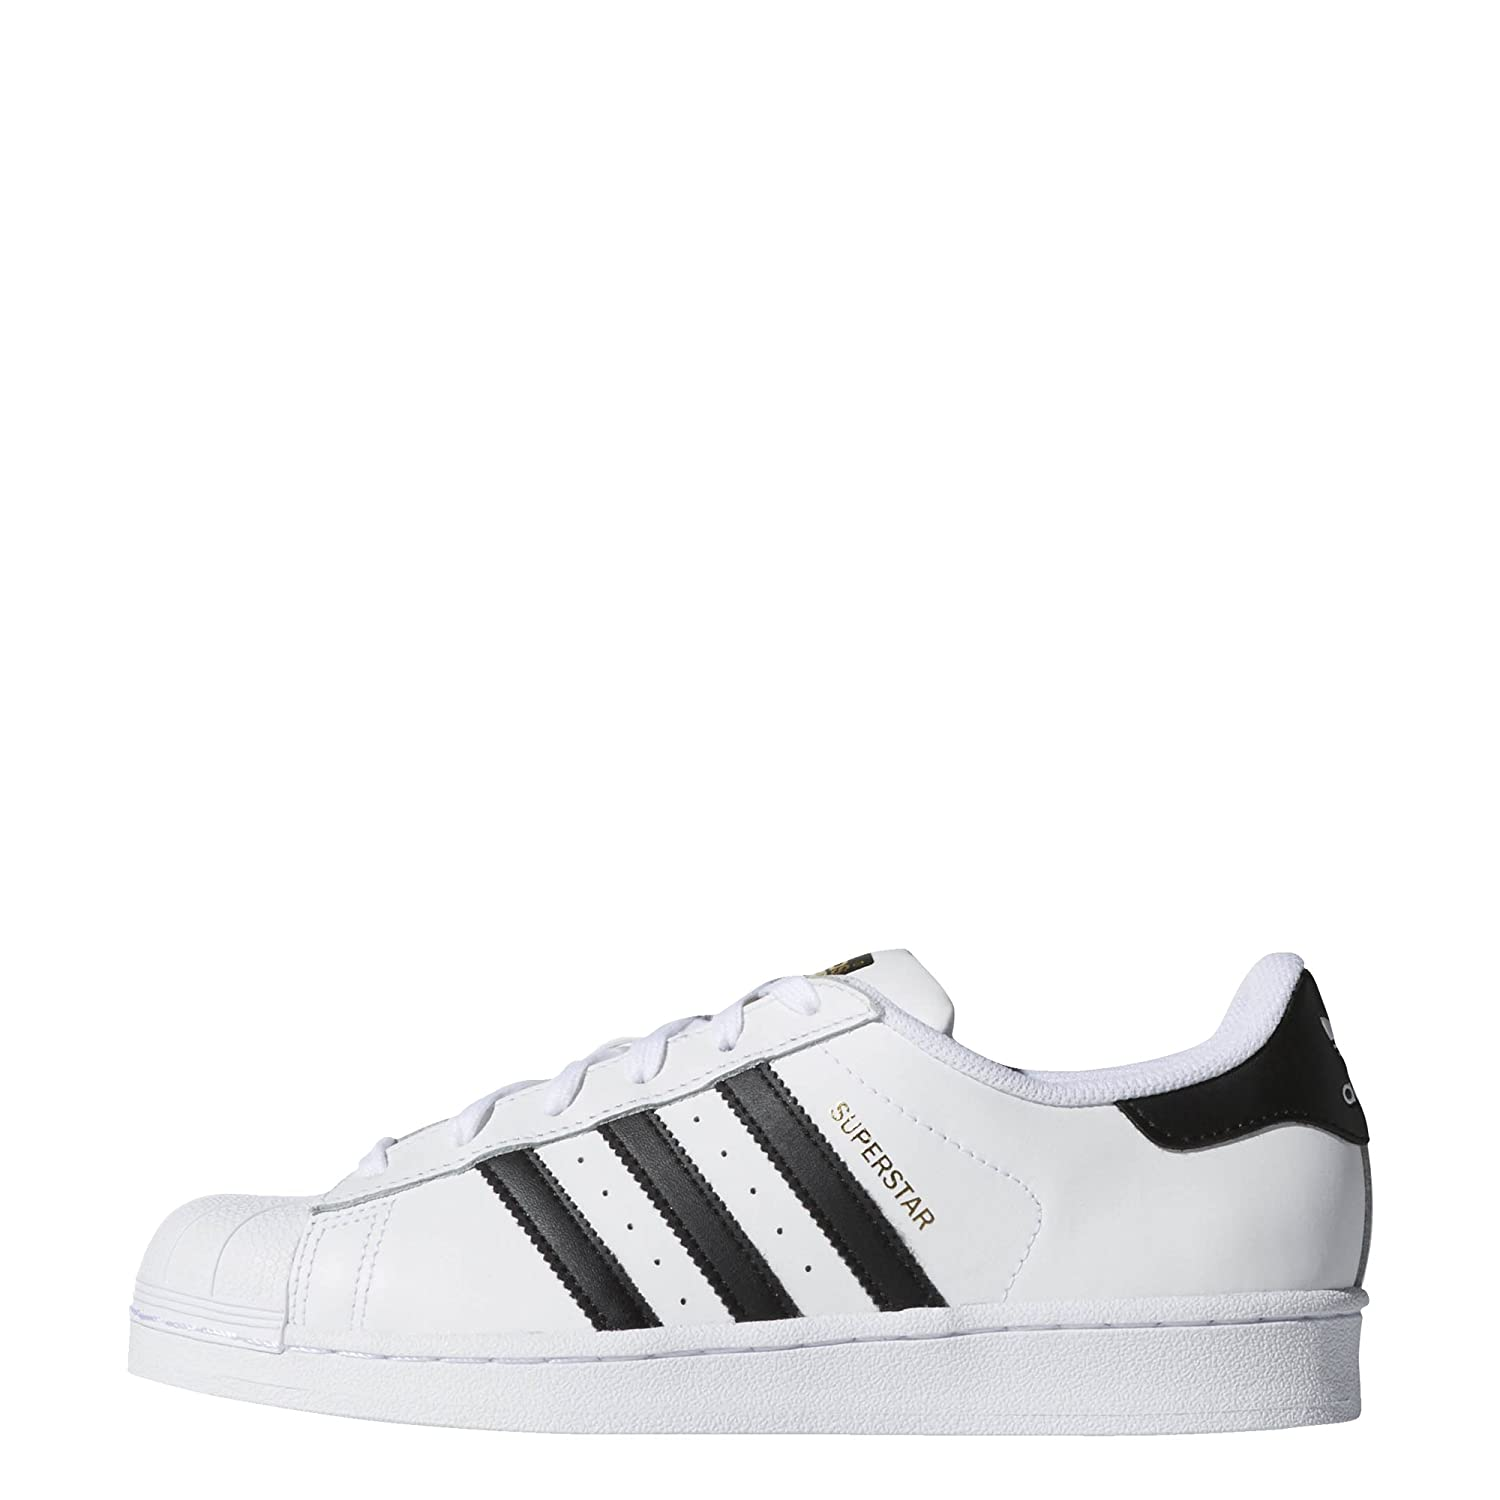 689cde0400 adidas Originals Women's Superstar Shoes Running